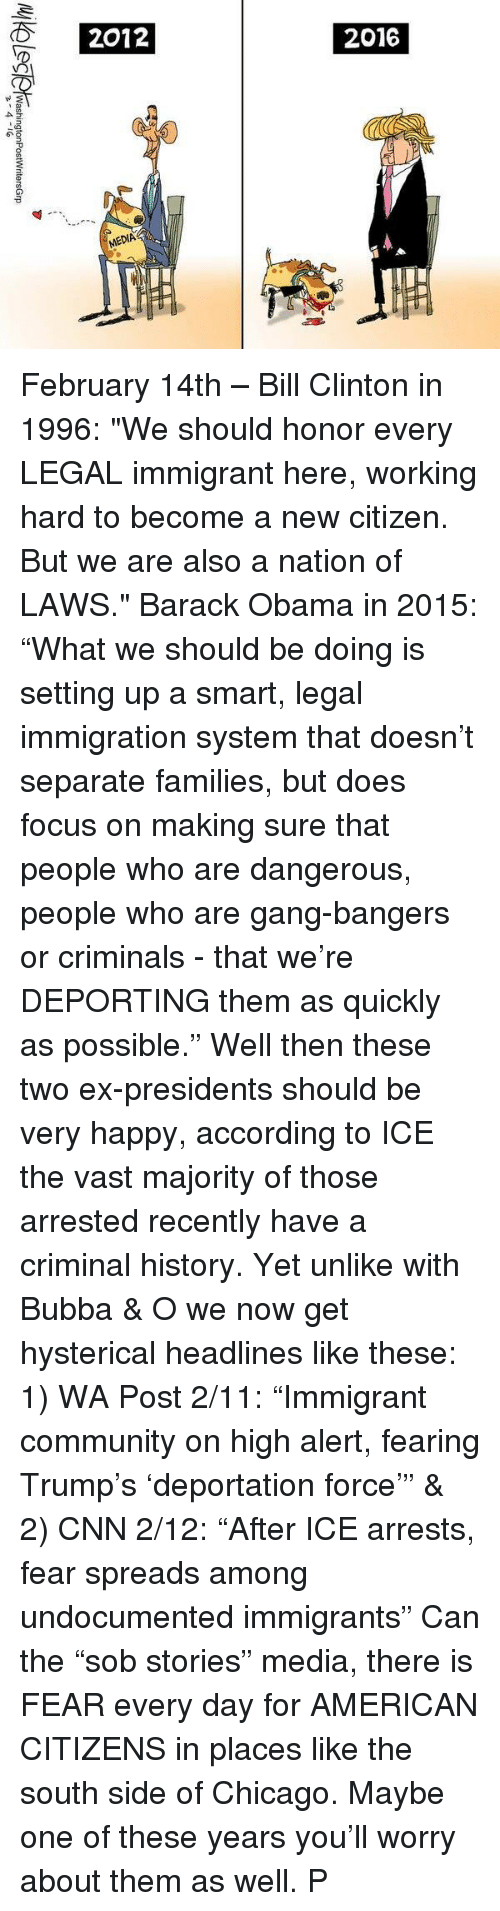 """Trump Deportation: Washington PostWritersGrp February 14th – Bill Clinton in 1996: """"We should honor every LEGAL immigrant here, working hard to become a new citizen. But we are also a nation of LAWS."""" Barack Obama in 2015: """"What we should be doing is setting up a smart, legal immigration system that doesn't separate families, but does focus on making sure that people who are dangerous, people who are gang-bangers or criminals - that we're DEPORTING them as quickly as possible."""" Well then these two ex-presidents should be very happy, according to ICE the vast majority of those arrested recently have a criminal history. Yet unlike with Bubba & O we now get hysterical headlines like these: 1) WA Post 2/11: """"Immigrant community on high alert, fearing Trump's 'deportation force'"""" & 2) CNN 2/12: """"After ICE arrests, fear spreads among undocumented immigrants"""" Can the """"sob stories"""" media, there is FEAR every day for AMERICAN CITIZENS in places like the south side of Chicago. Maybe one of these years you'll worry about them as well. P"""